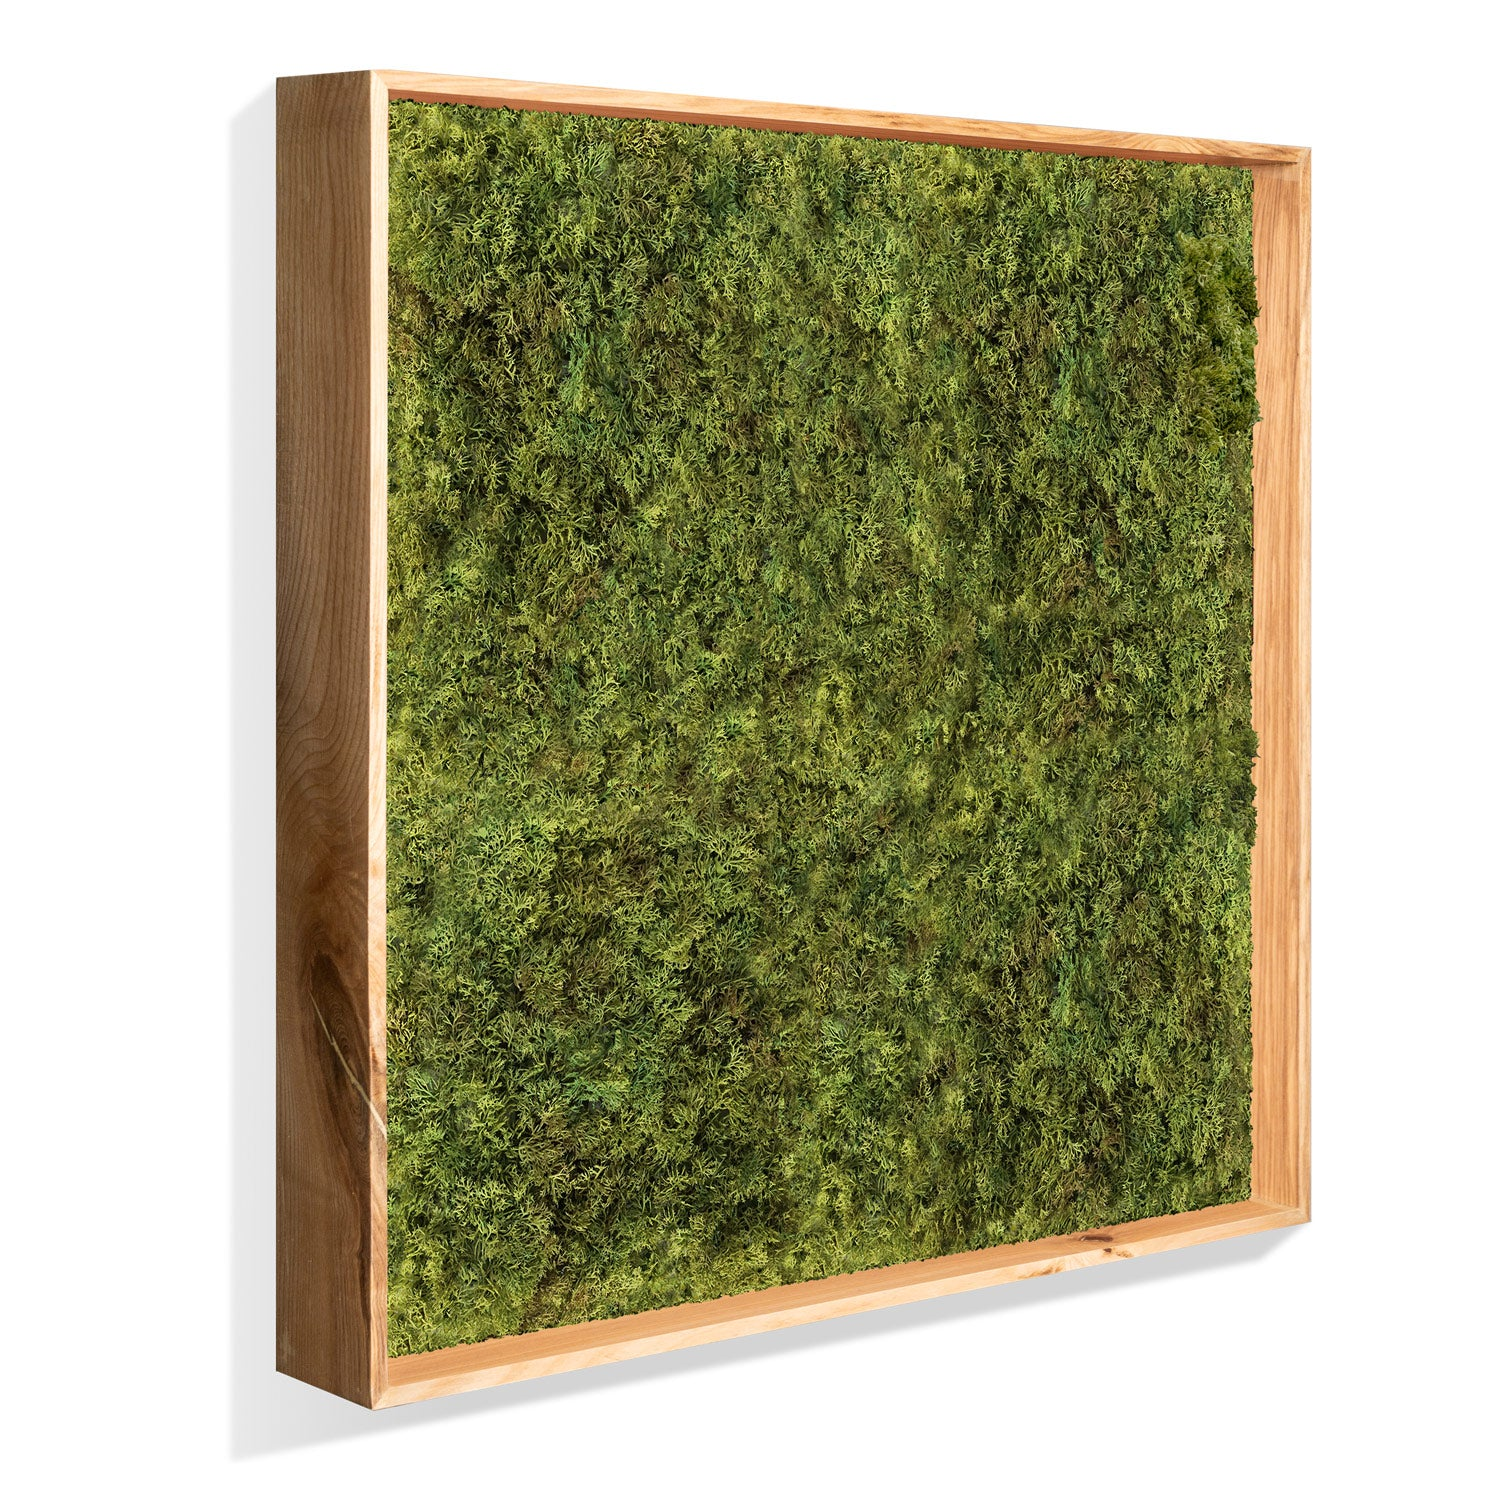 Green Wall: Permanent Botanical Textured Moss in a shadow box. (quarter view)